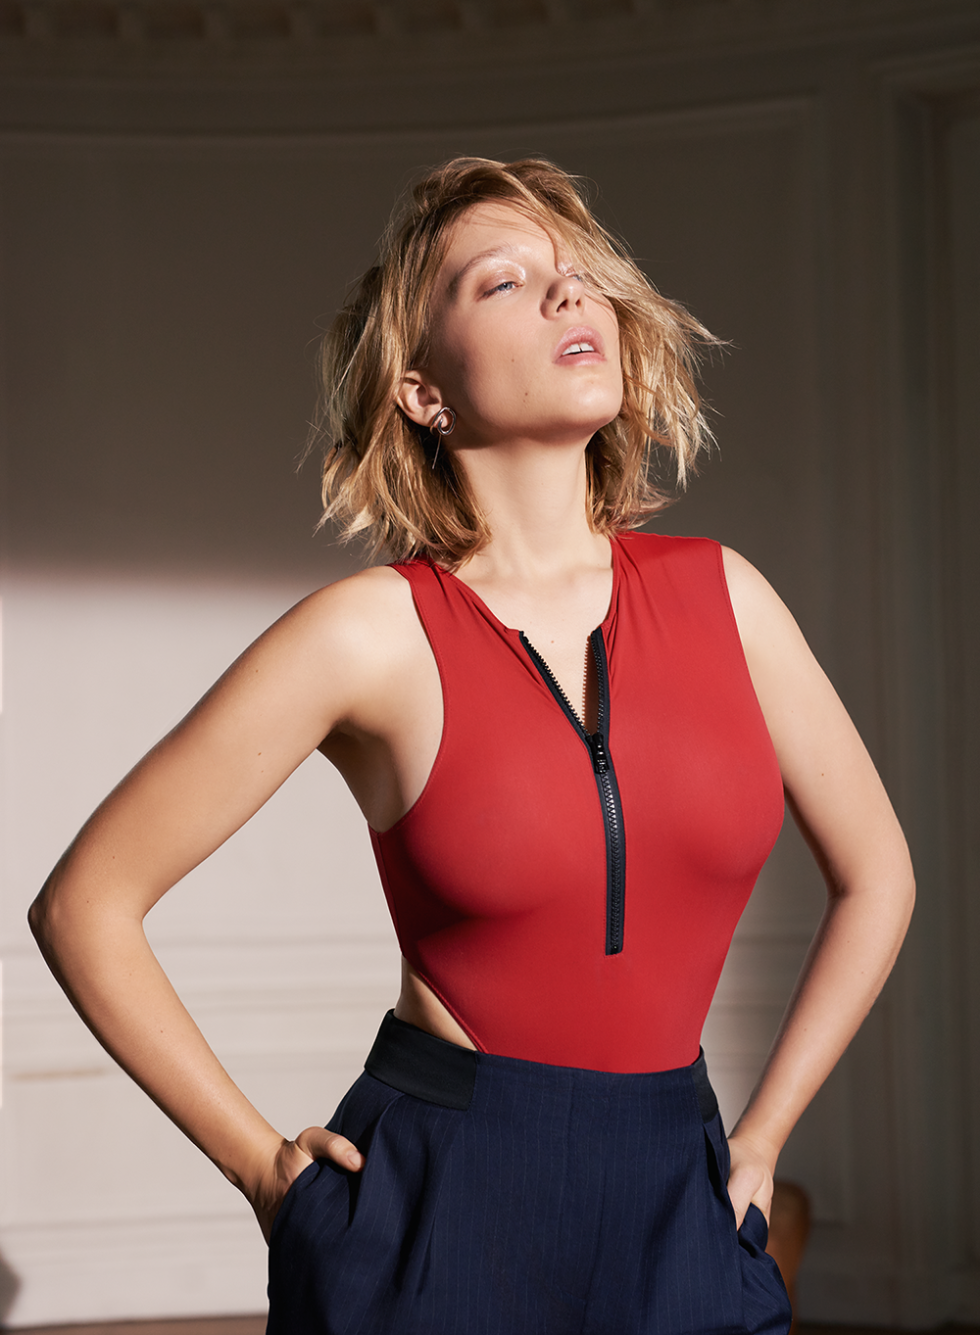 Instagram Lea Seydoux nudes (49 foto and video), Tits, Cleavage, Boobs, lingerie 2018